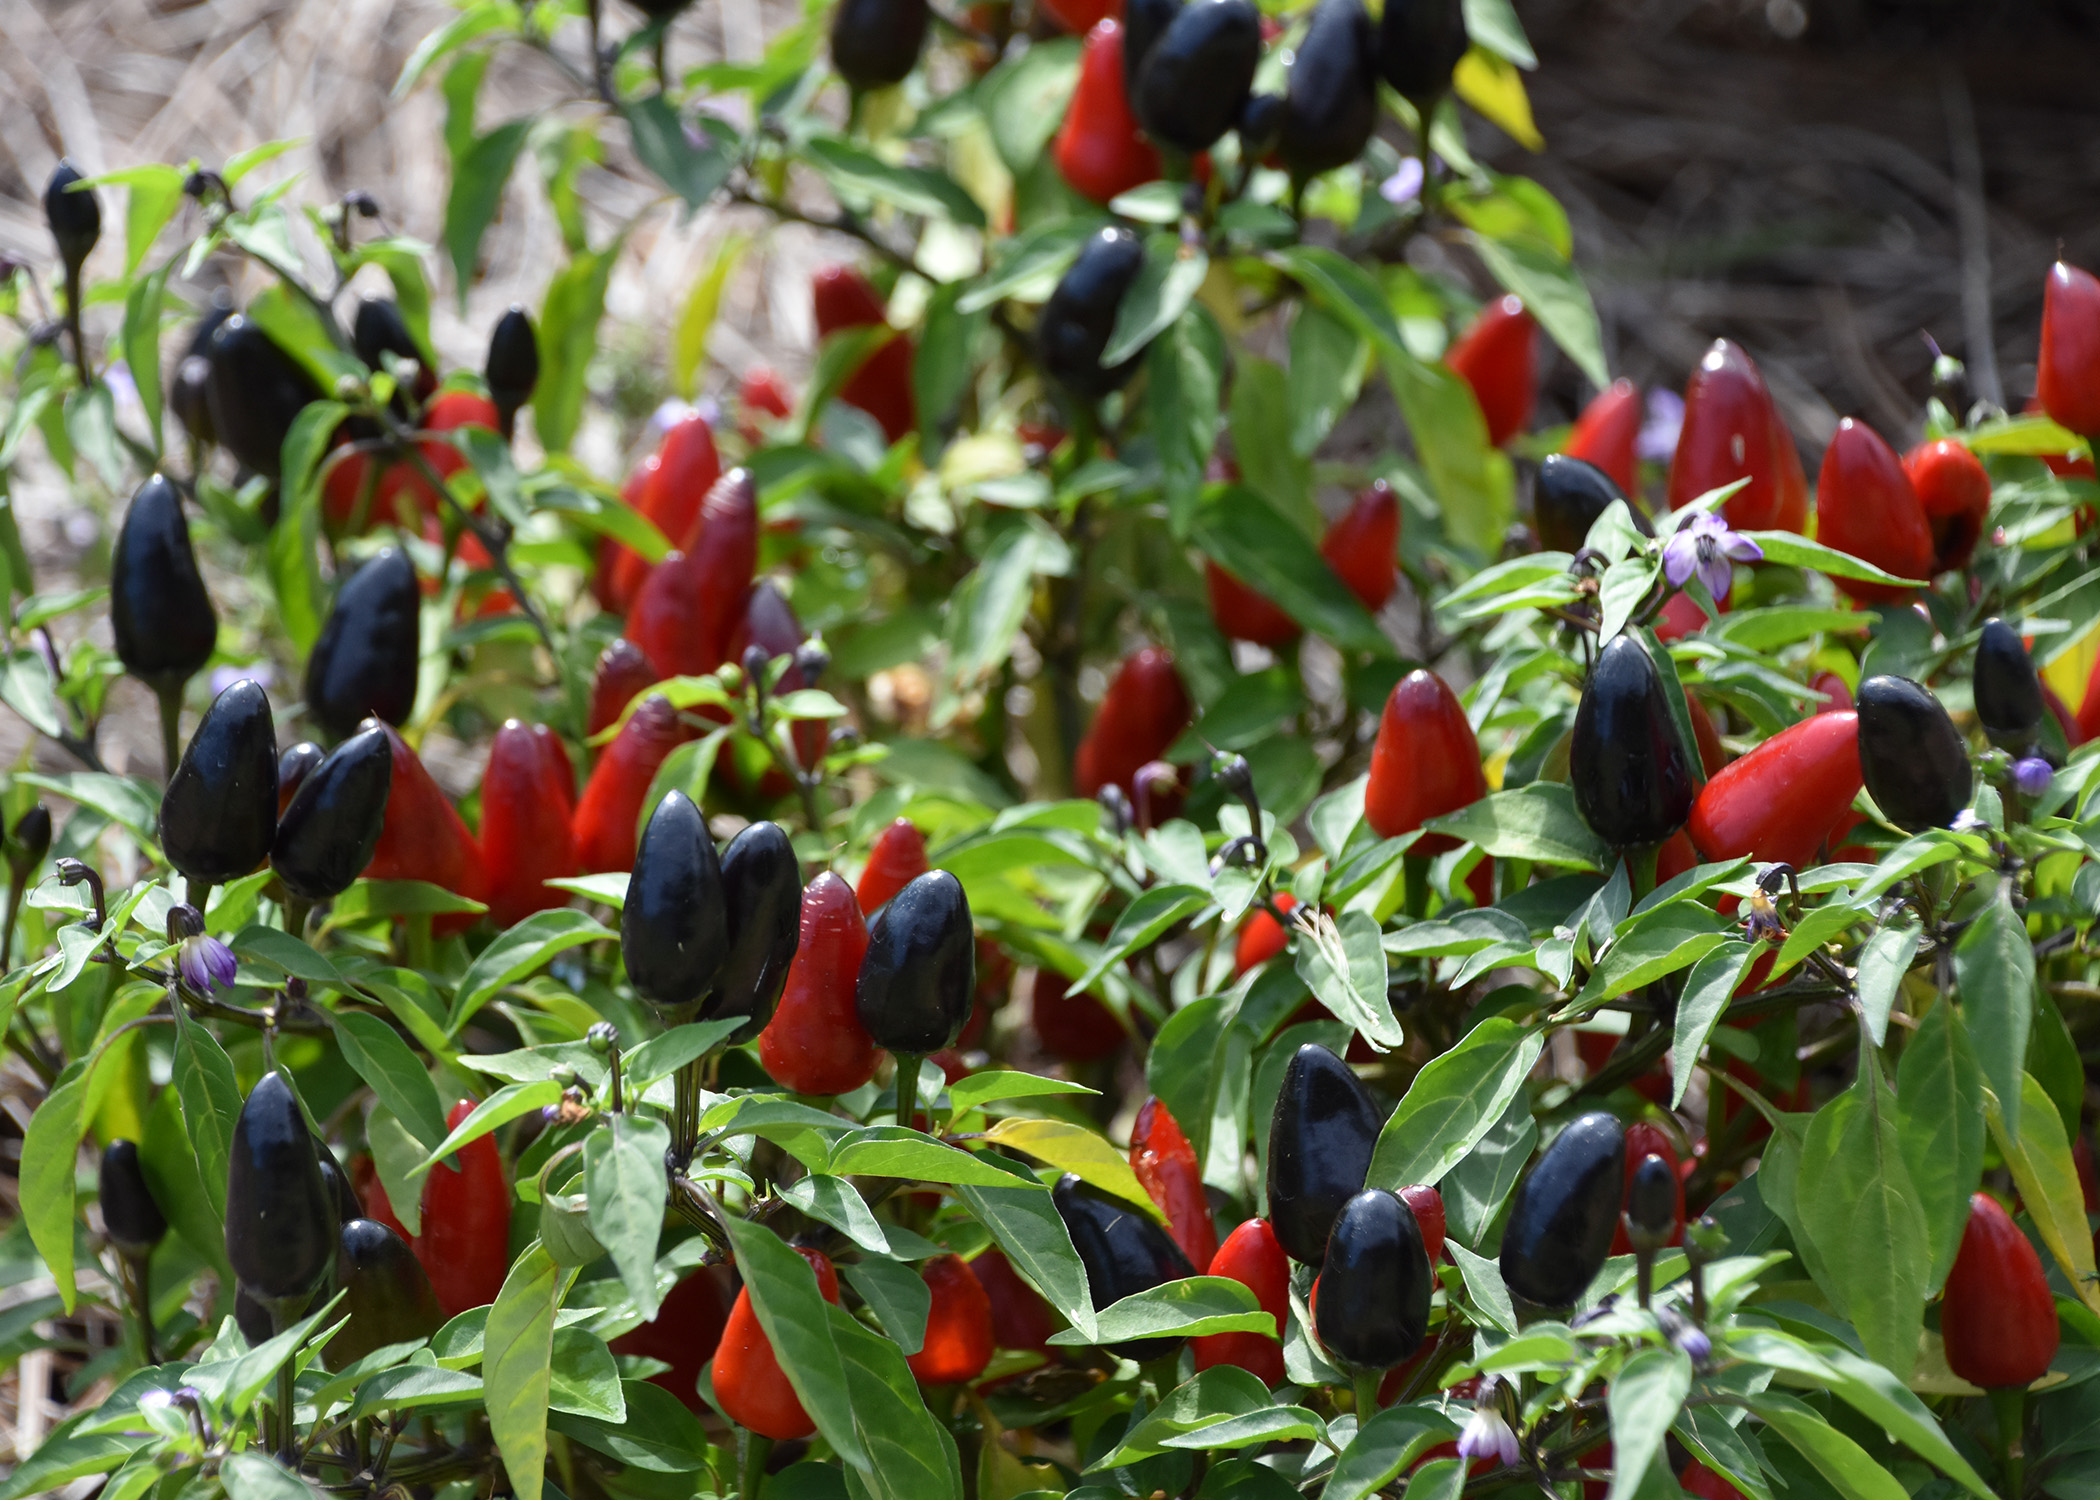 The fruit of the ornamental pepper Black Hawk is held high above the foliage for our viewing enjoyment. (Photo by MSU Extension/Gary Bachman)